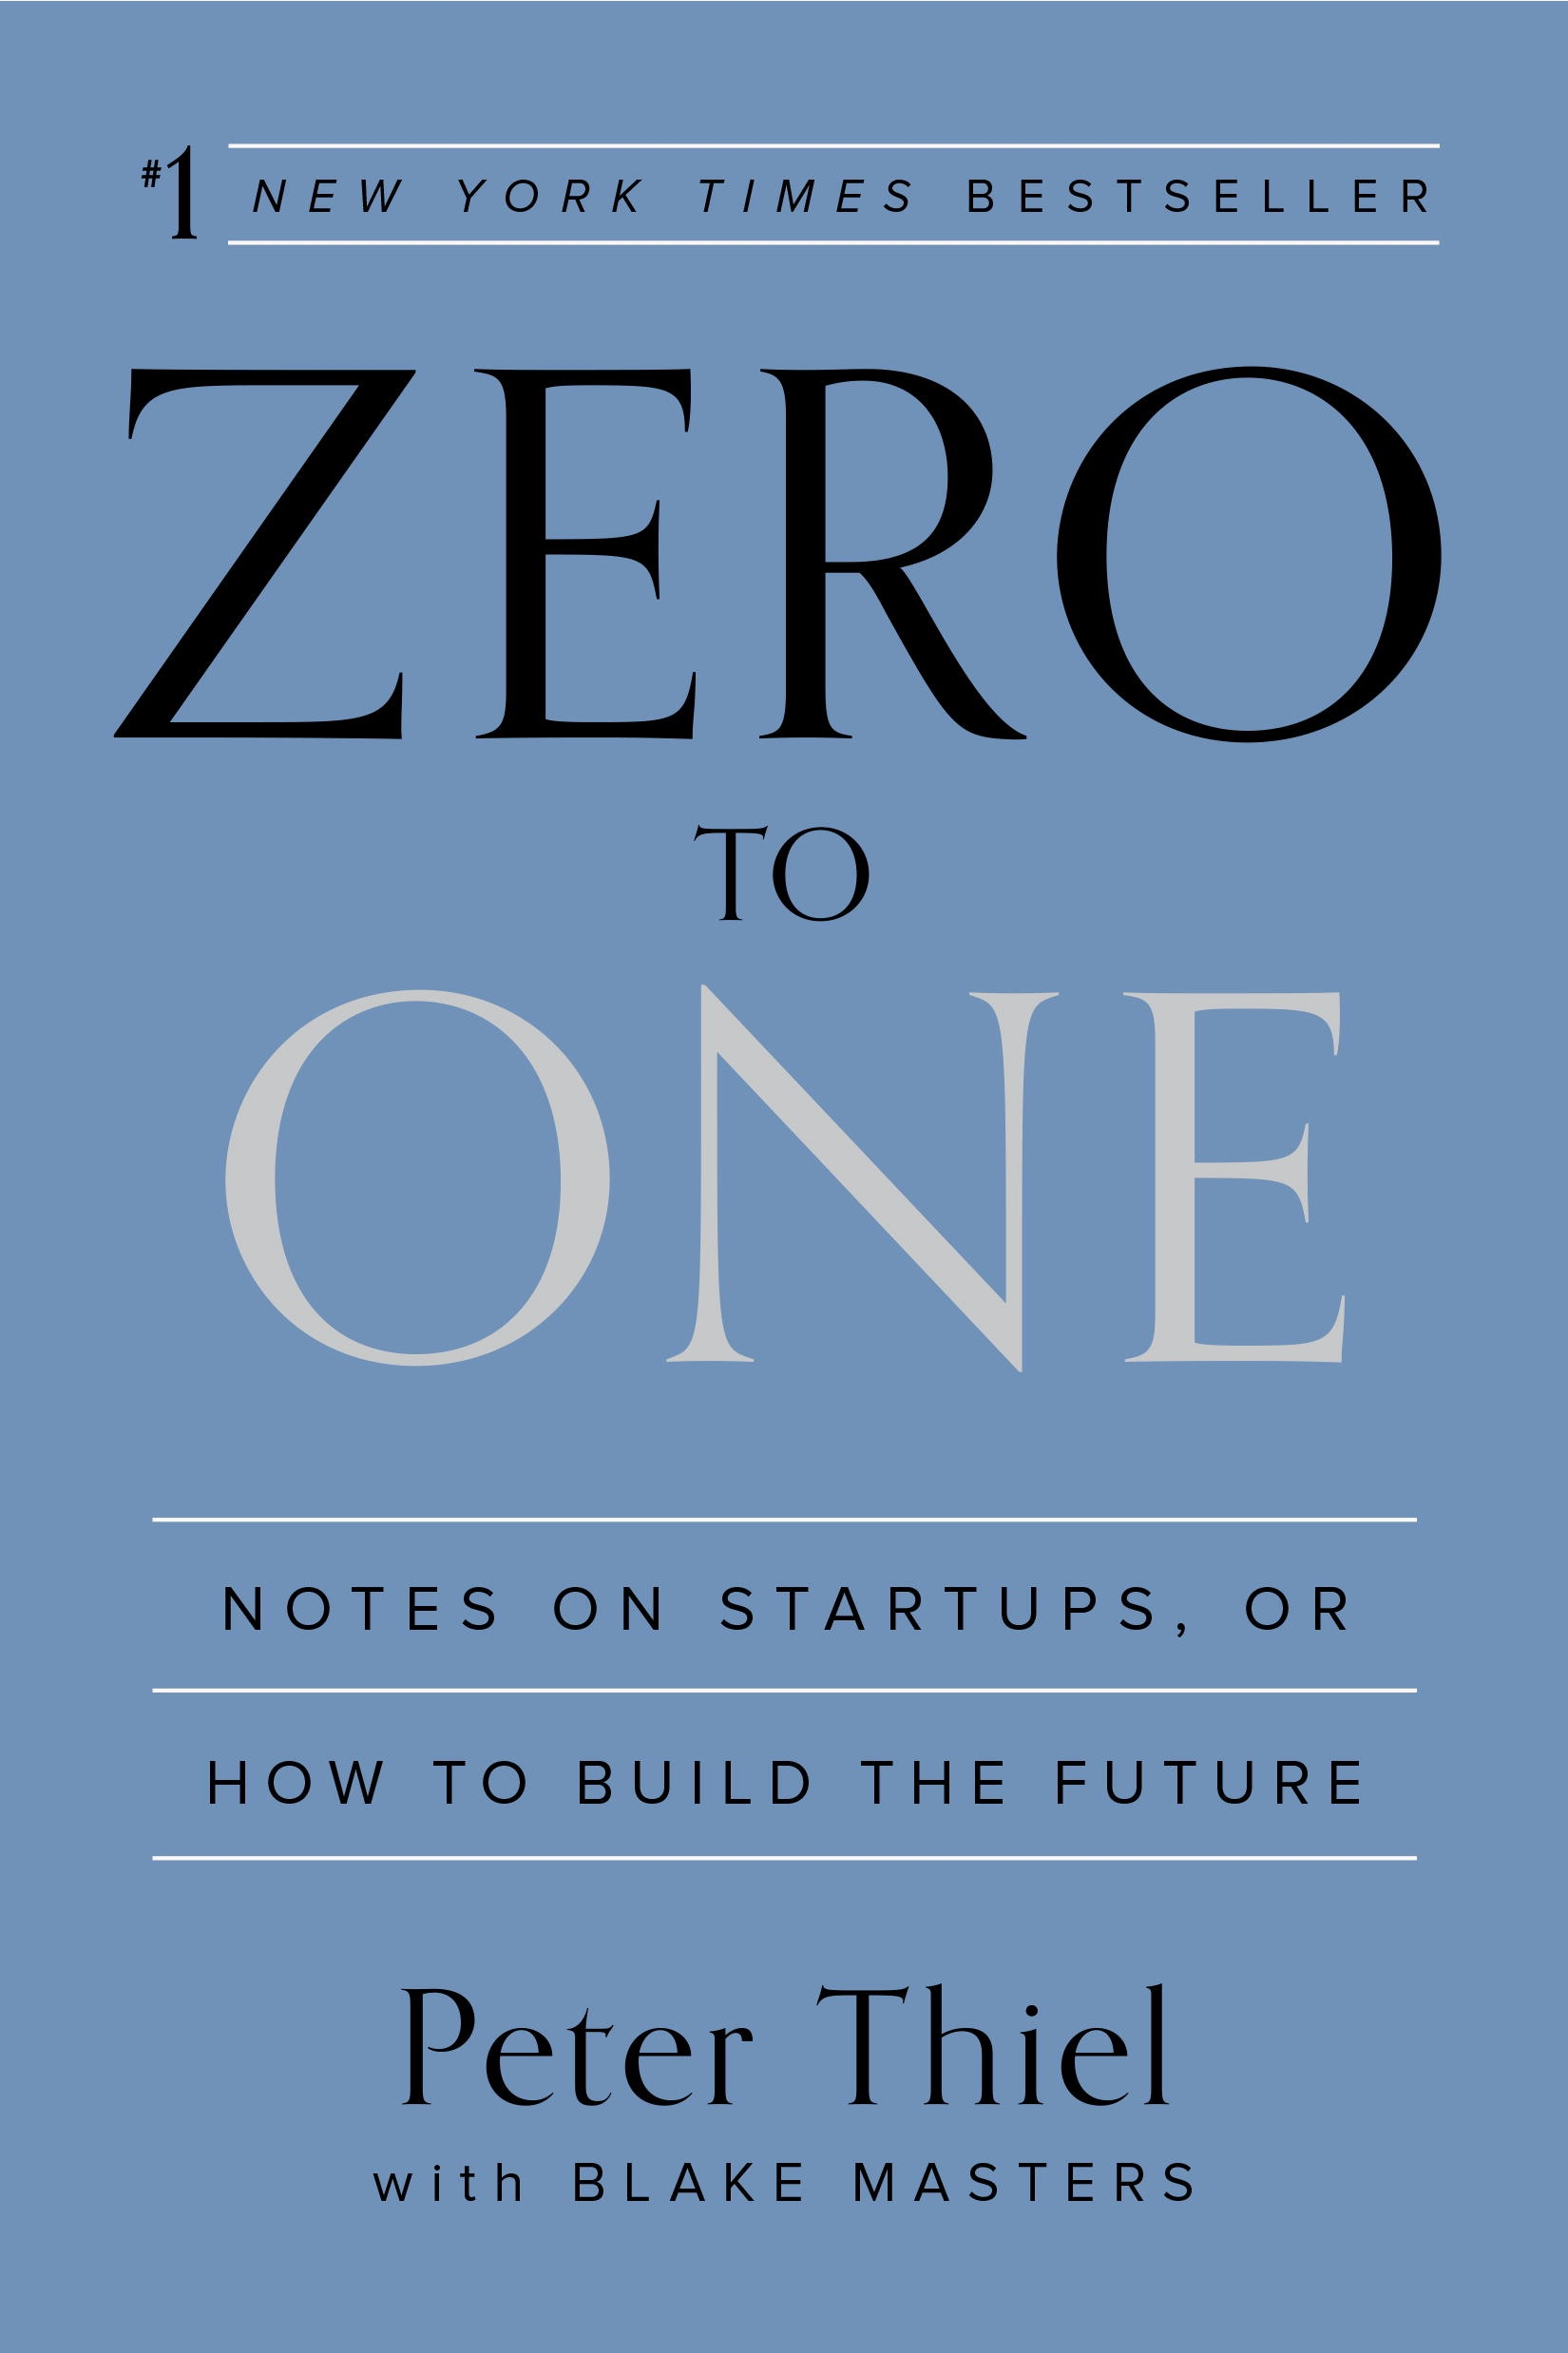 Book Cover of Zero to One